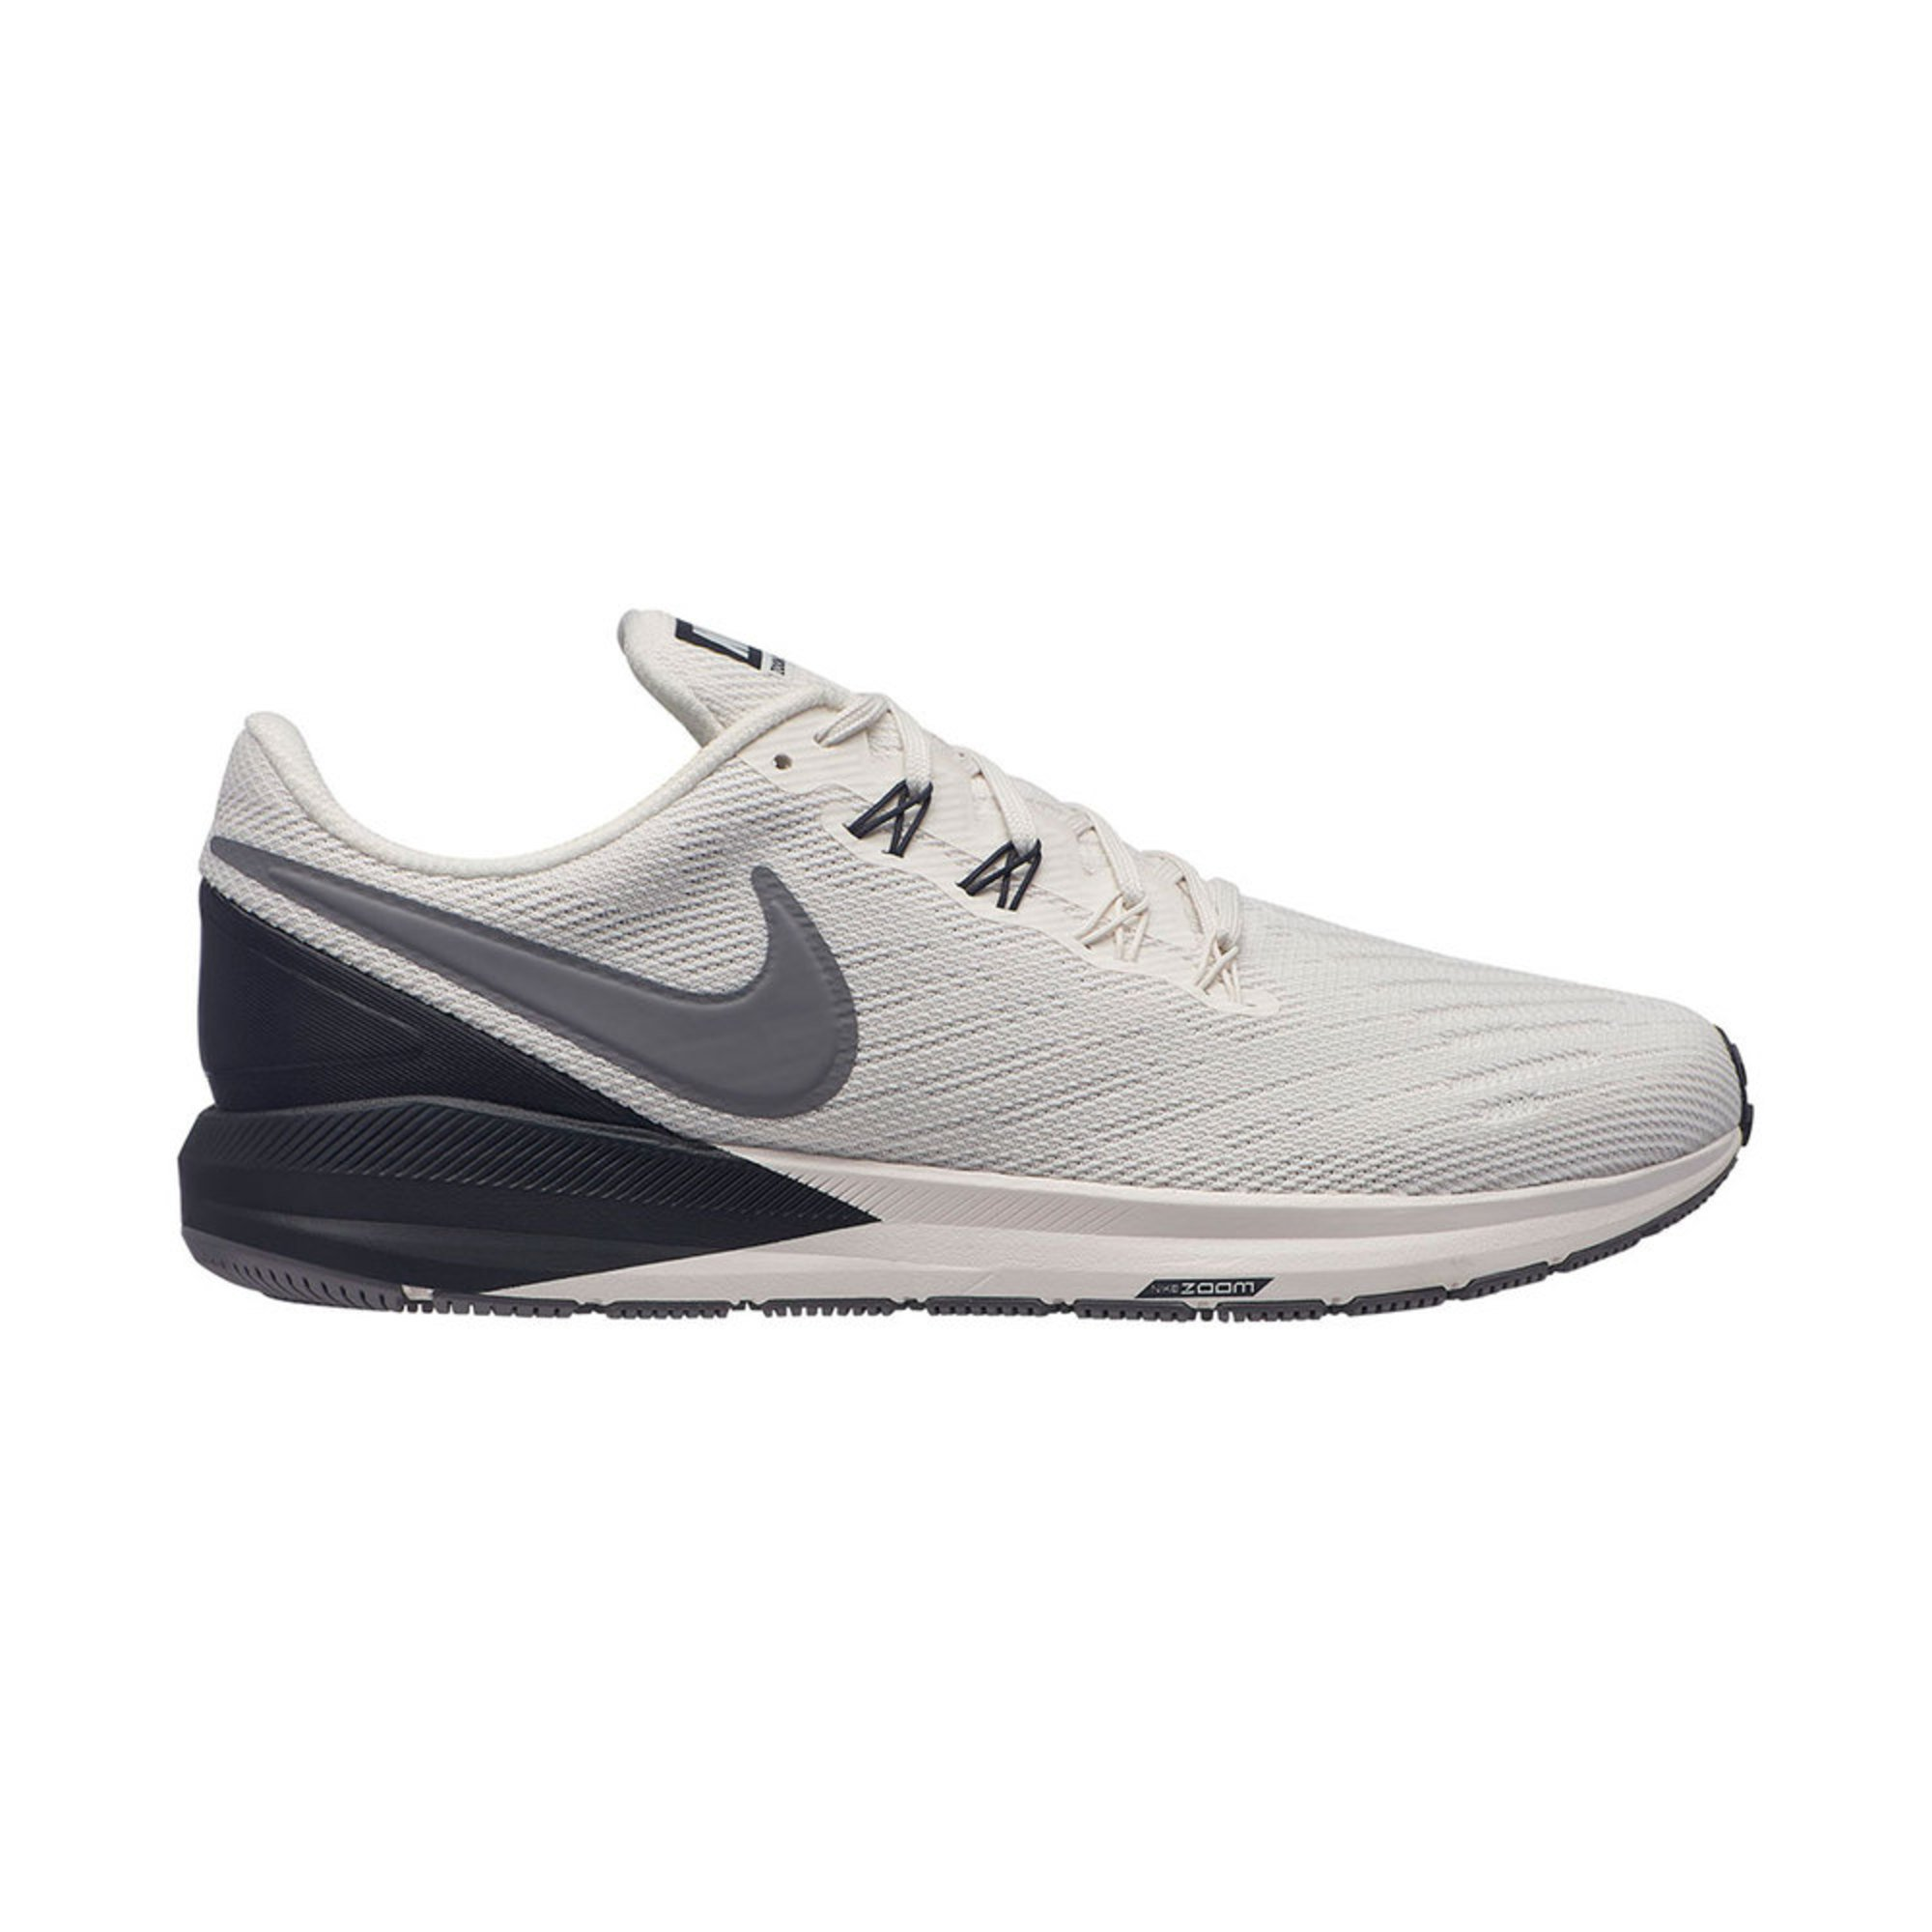 be979ca09ae90 Nike. Nike Men s Air Zoom Structure 22 Running Shoe